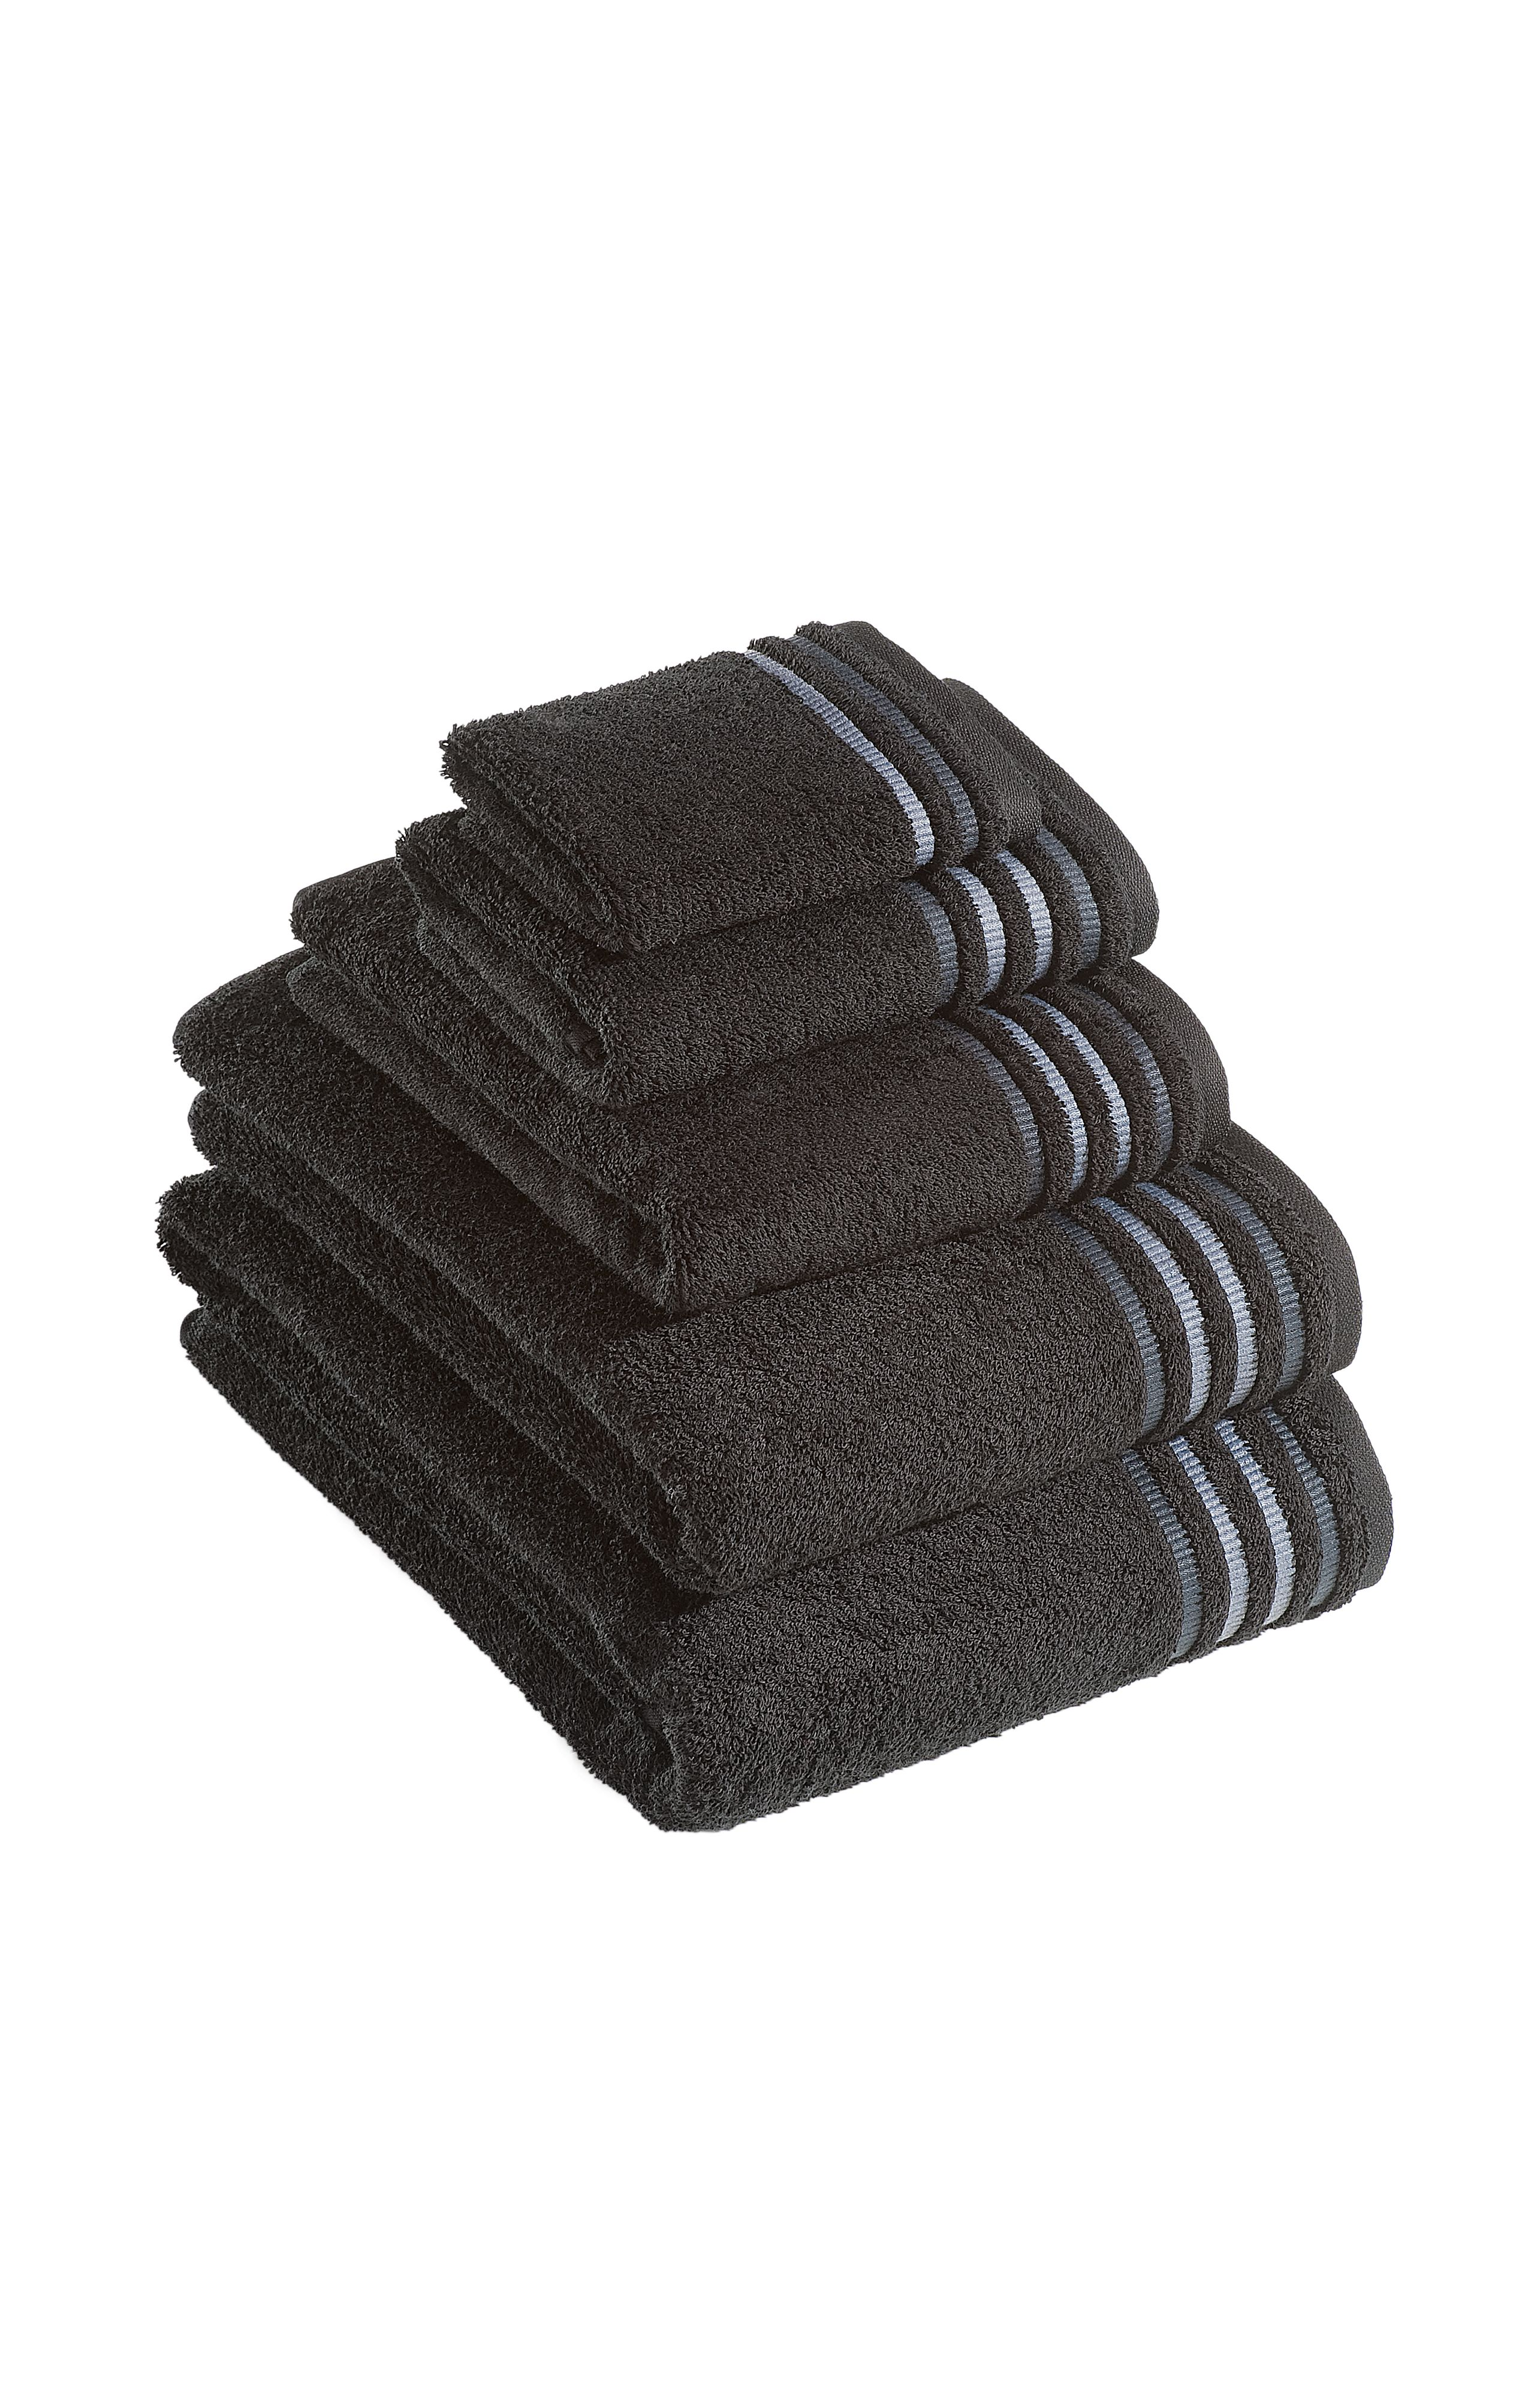 De Lux towel range in black